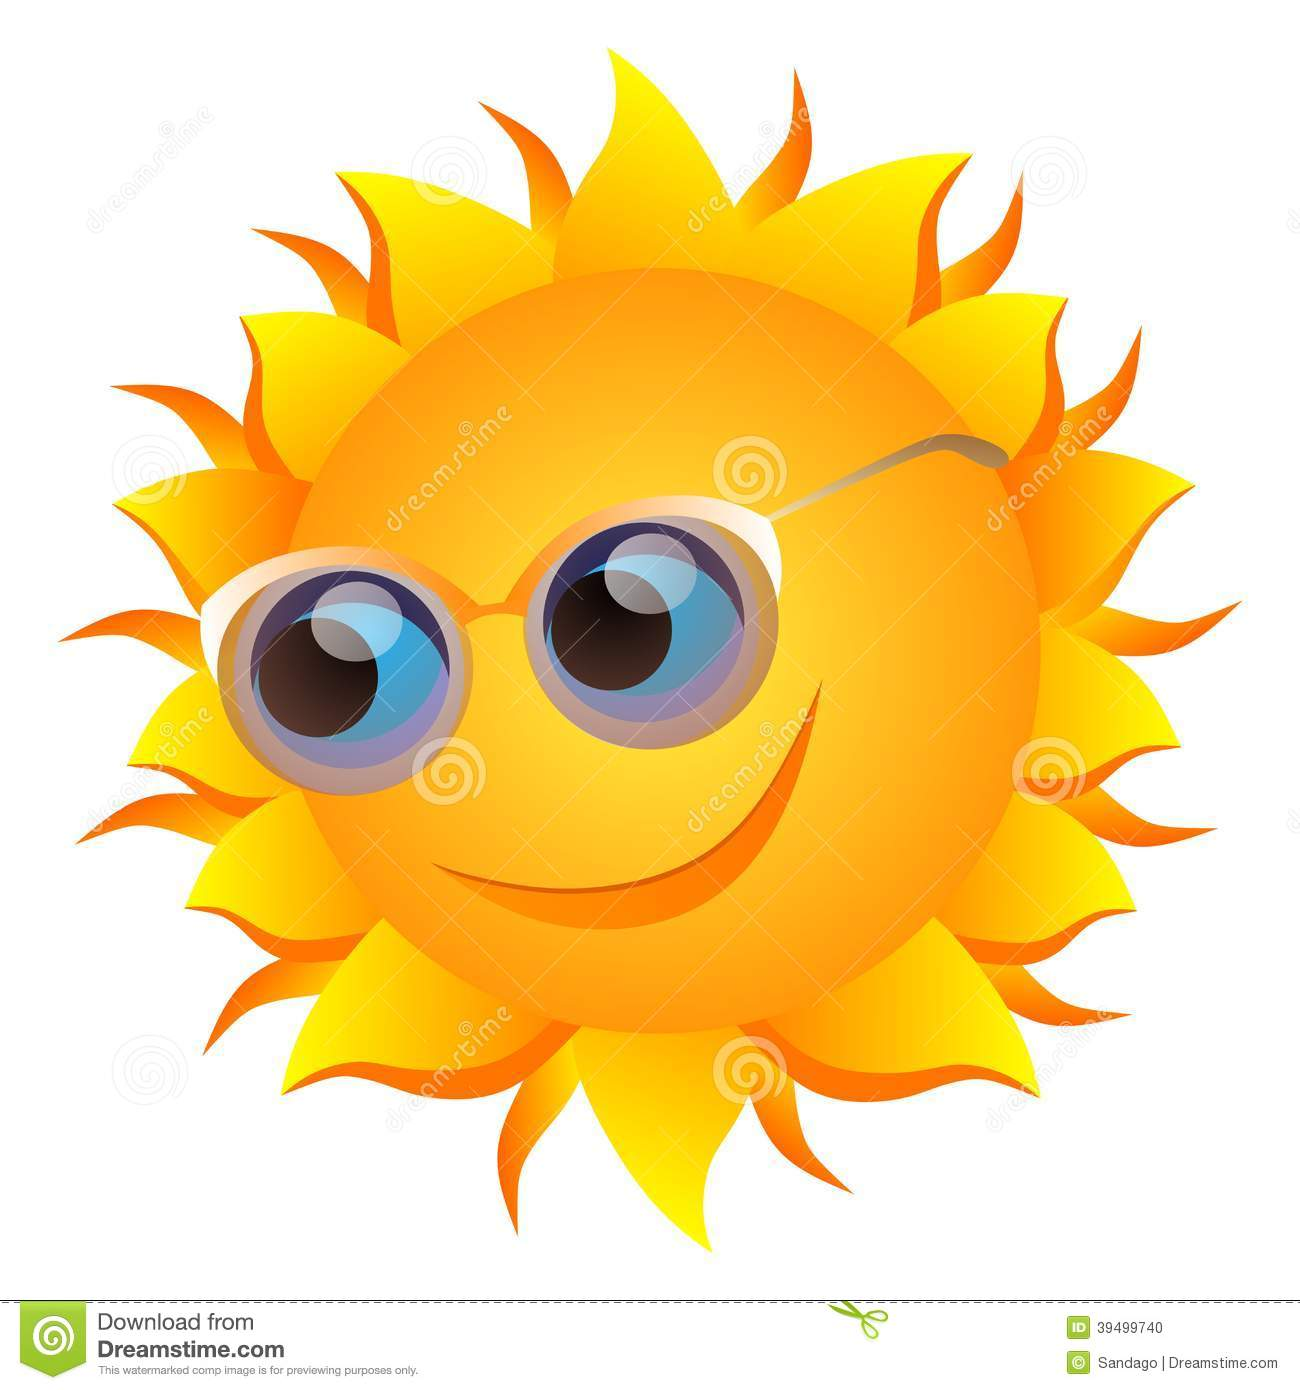 Smiling sun with glasses